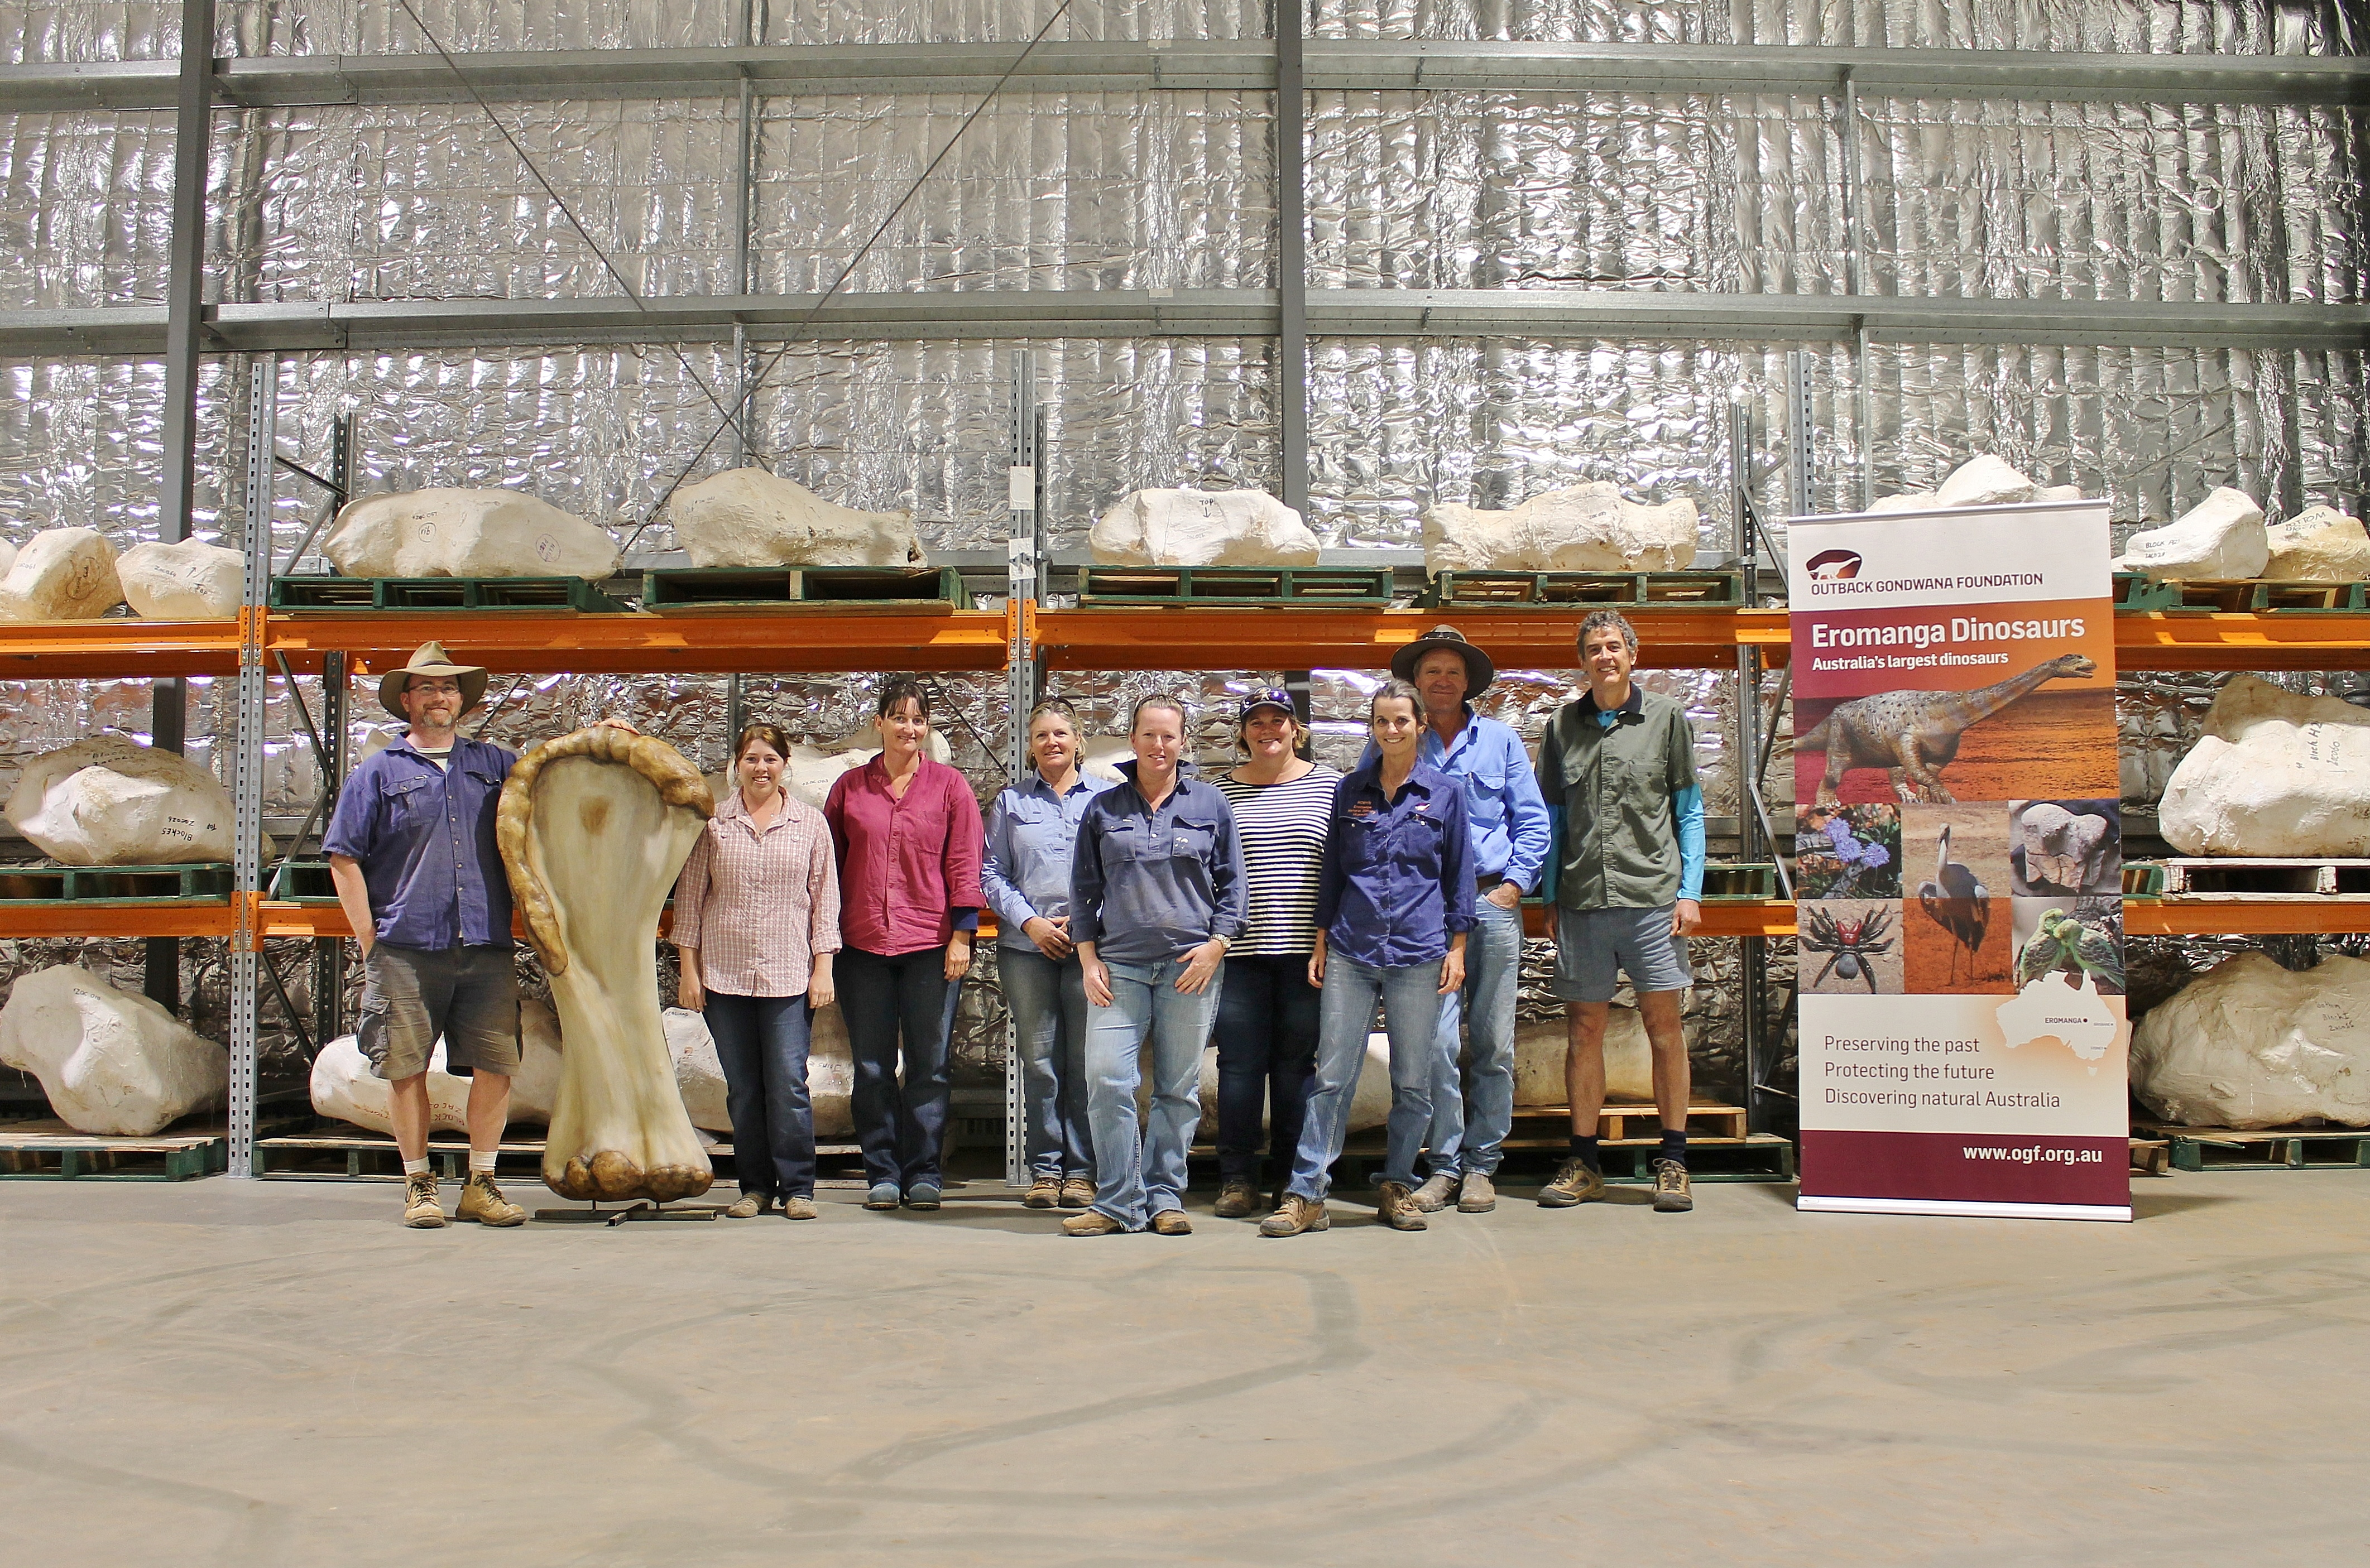 """A field research team poses with a 3D reconstruction of the humerus bone and other dinosaur bones in plaster jackets from """"Cooper,"""" a new species of dinosaur discovered in Queensland and recognised as the largest ever found in Australia, in this undated handout image made available to Reuters on June 8, 2021 in Eromanga, Australia. Eromanga Natural History Museum/Handout via REUTERS"""